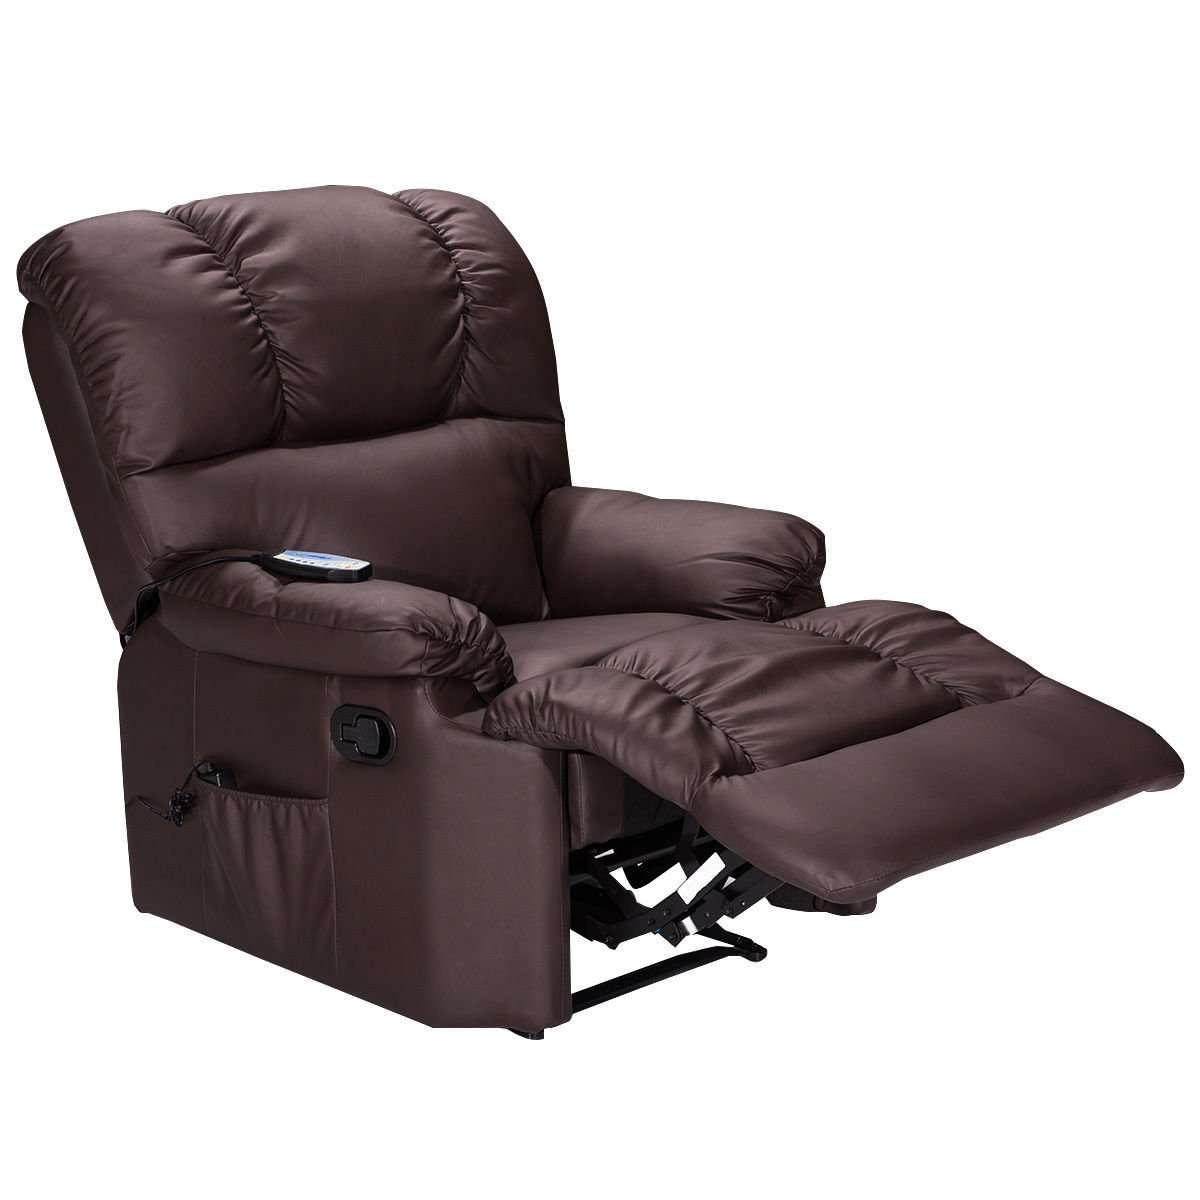 Massage Sofa Recliner Deluxe Ergonomic Lounge Heated PU Leather W/Control Brown